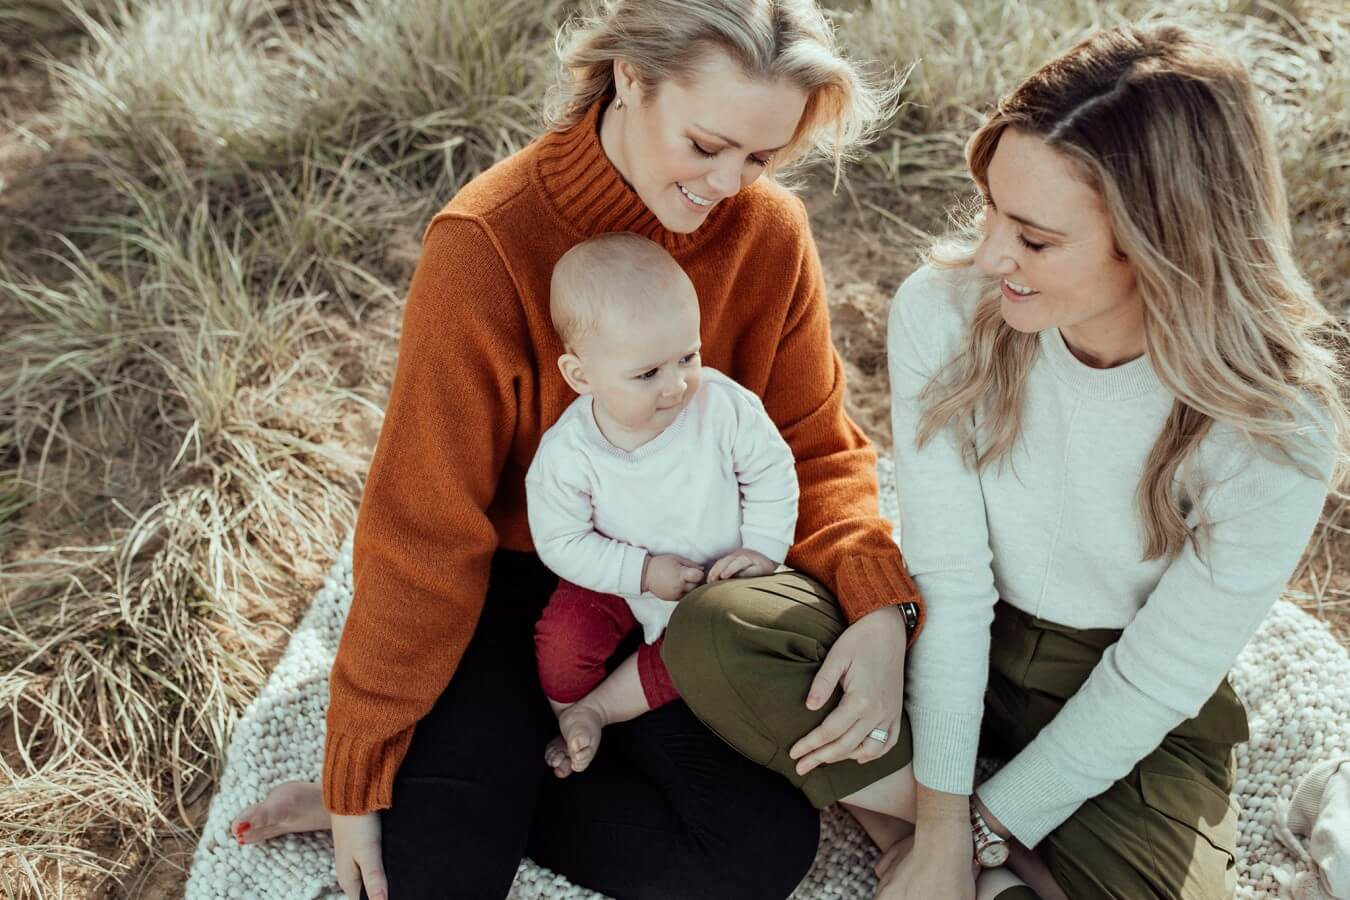 Two women sit outdoors on a blanket, smiling and looking down at a baby sitting in the lap of one woman. Taken by the beach at Ricketts Point, outside of Melbourne.